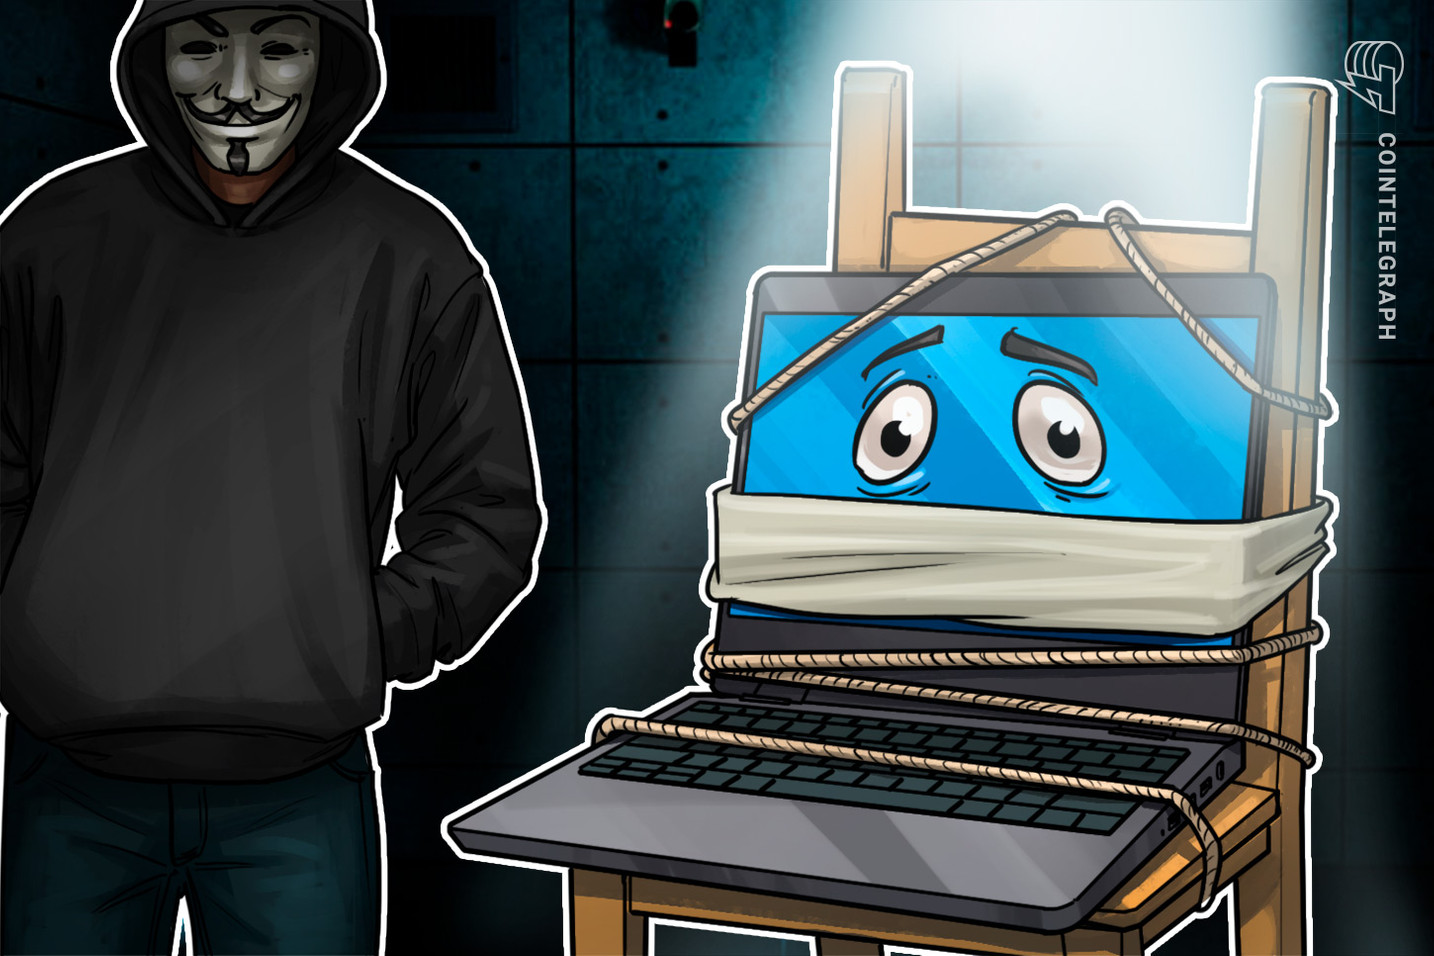 Chainalysis: 64% of Ransomware Attackers Launder Proceeds via Crypto Exchanges